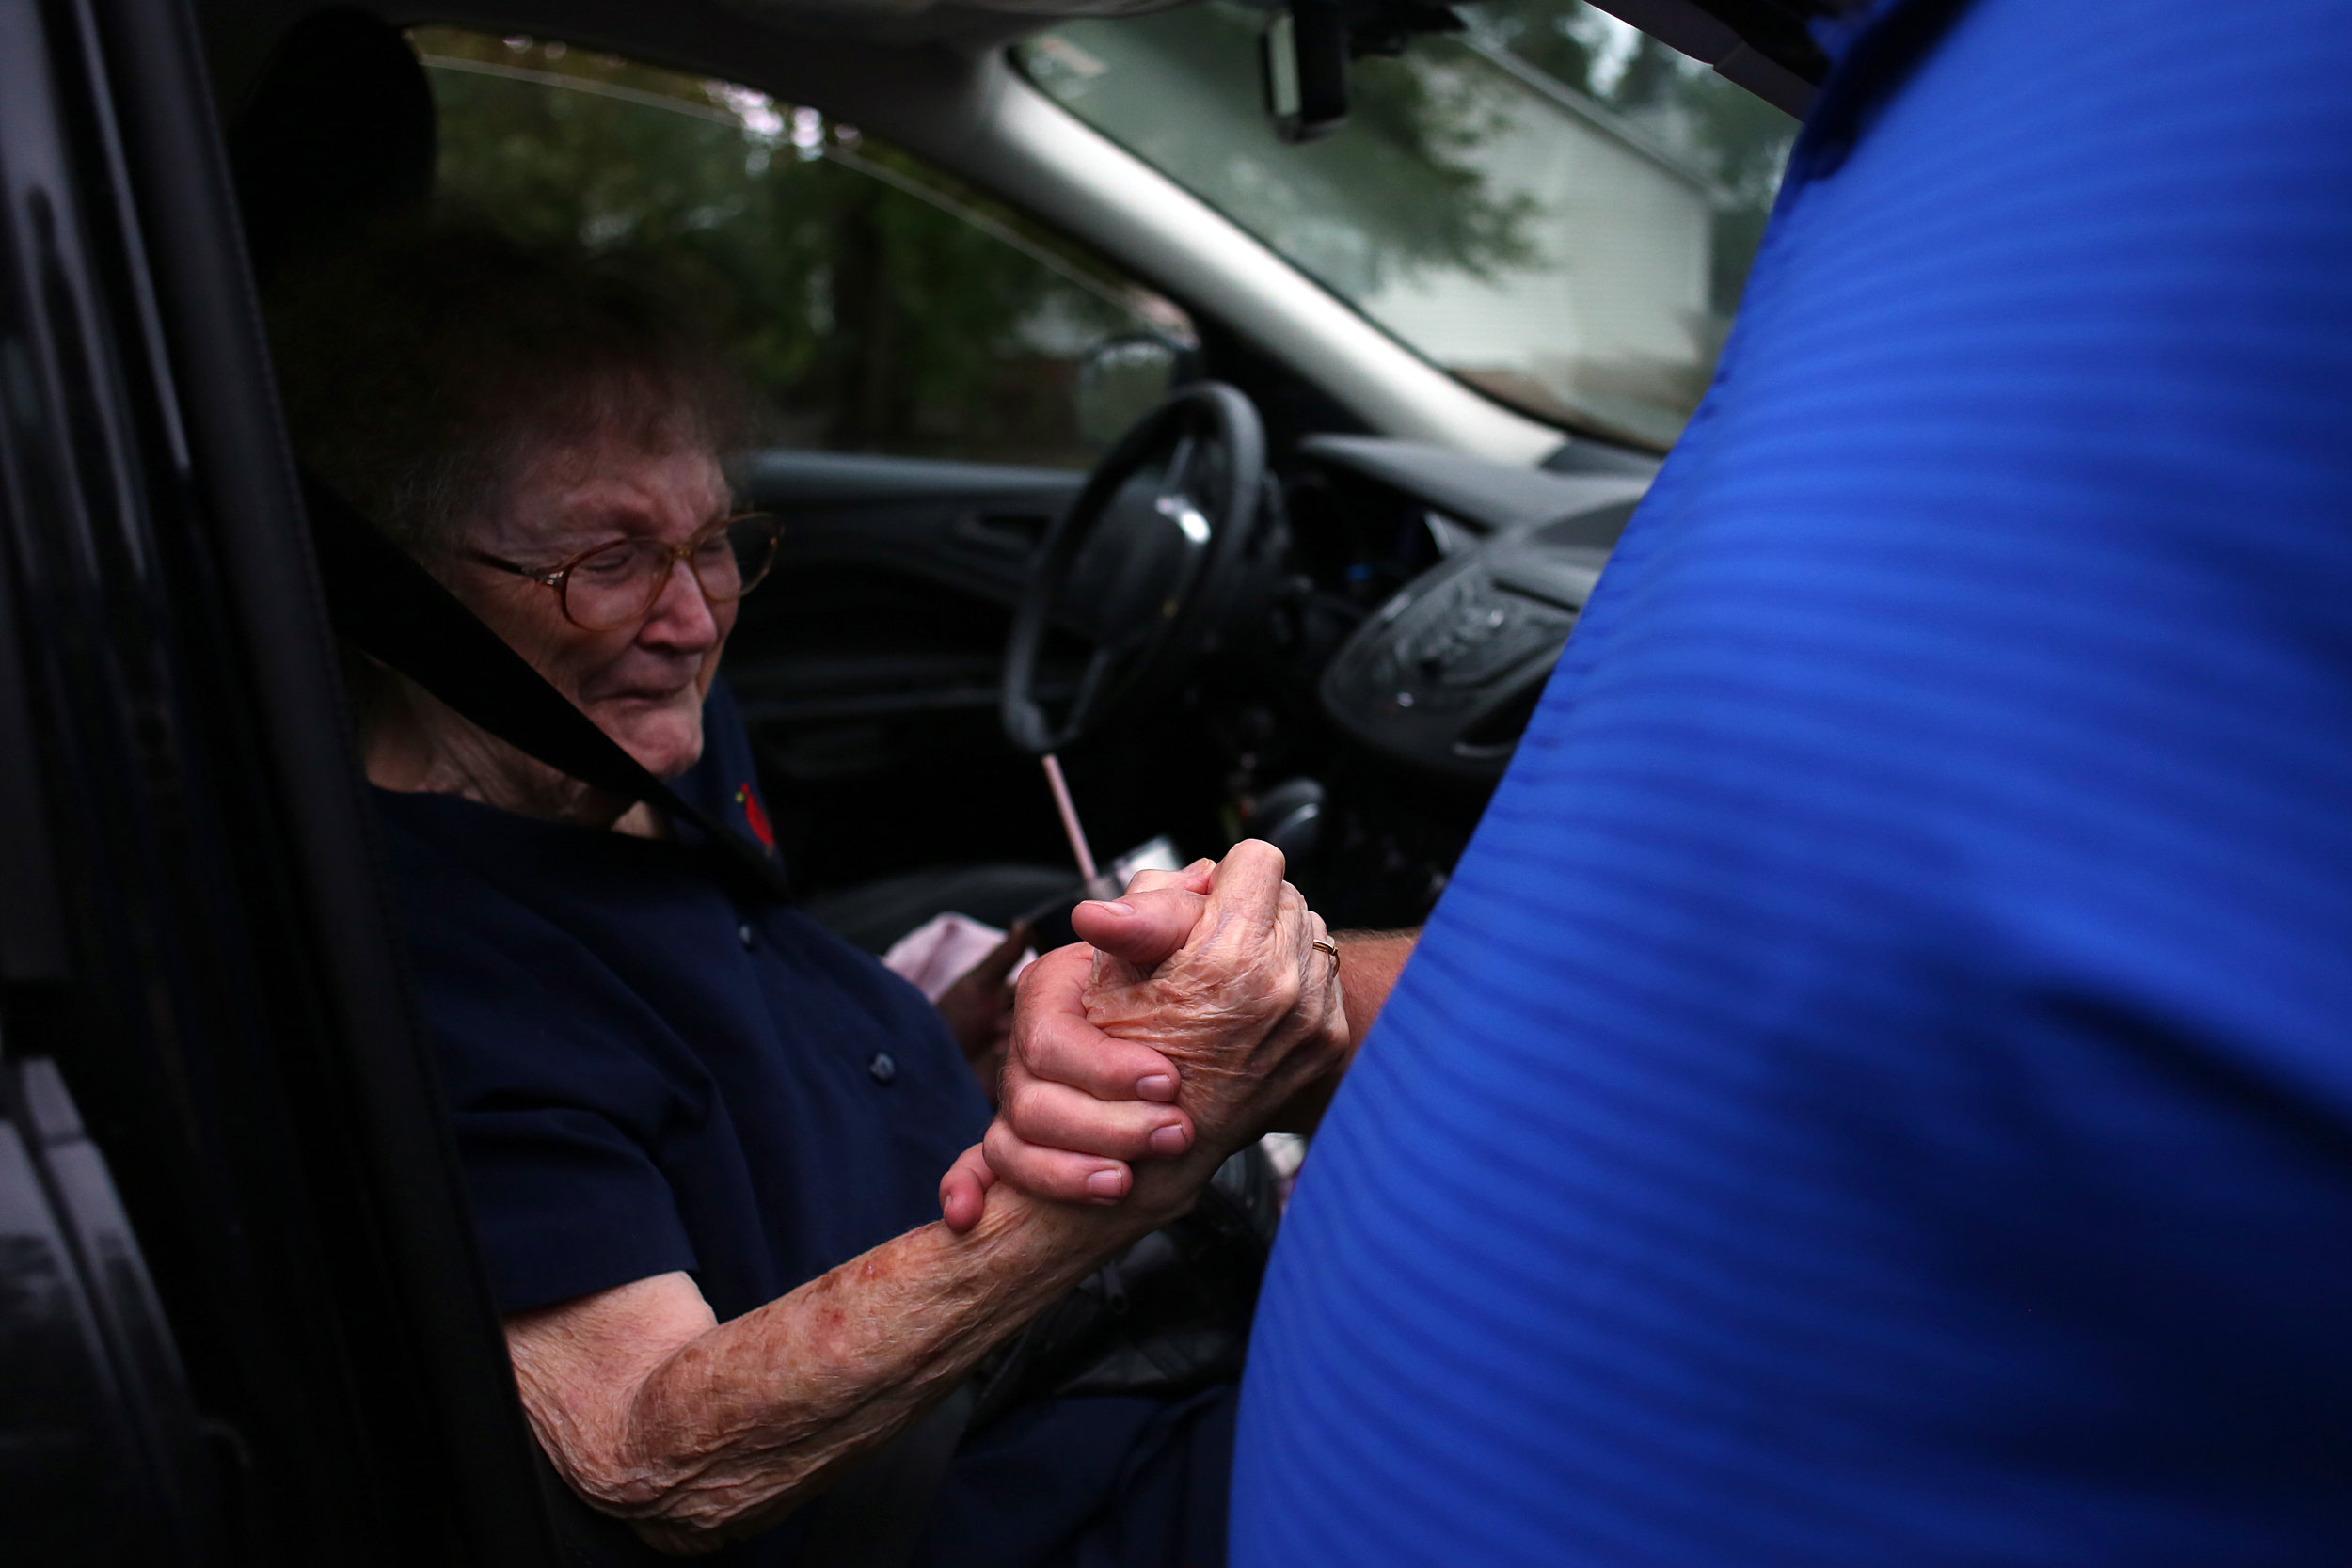 "Elizabeth Jones, 83, clasps the hand of her neighbor David Morgan outside of their homes on Simmons Street in New Bern, which were flooded. They had returned during a lull to retrieve belongings. ""You see this stuff on TV,"" Mr. Morgan said. ""You don't really know devastation until it happens to you."" The water came in as they were sleeping, Morgan said, and they had to leave in a hurry. 'Just didn't have time to grab more stuff,' he said, adding, ""We learned a lot from this."" Ms. Jones, who had been evacuated by the National Guard, said, ""I never dreamed this would happen."""